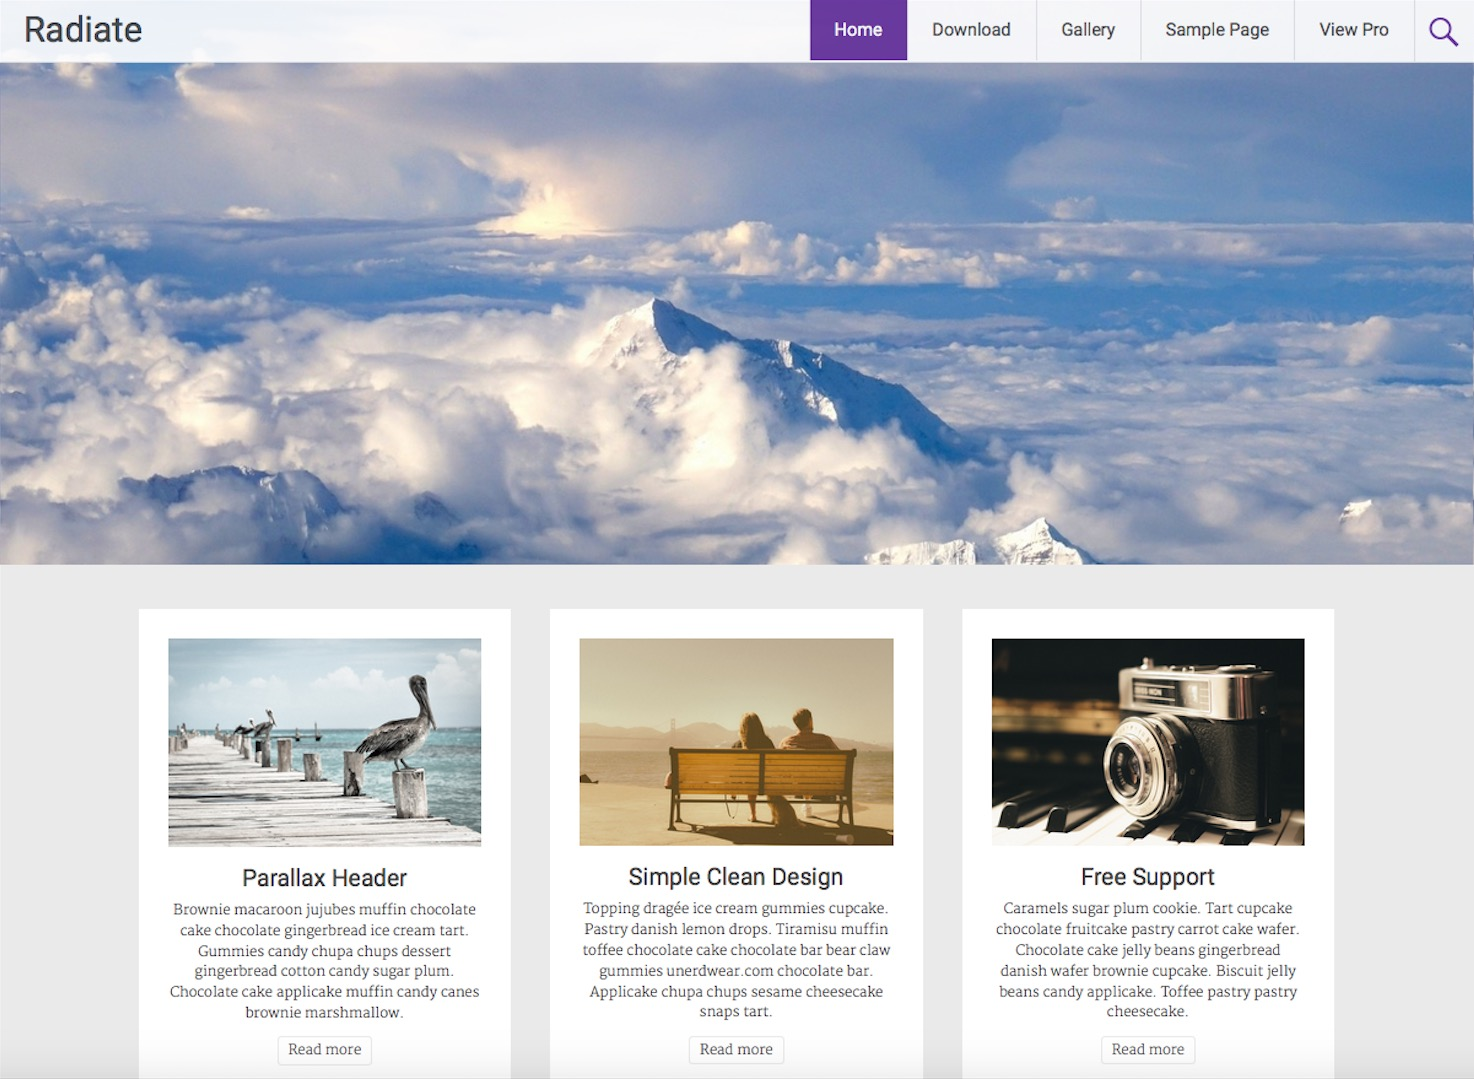 free-wordpress-themes-for-persoanl-blog-radiate.jpg